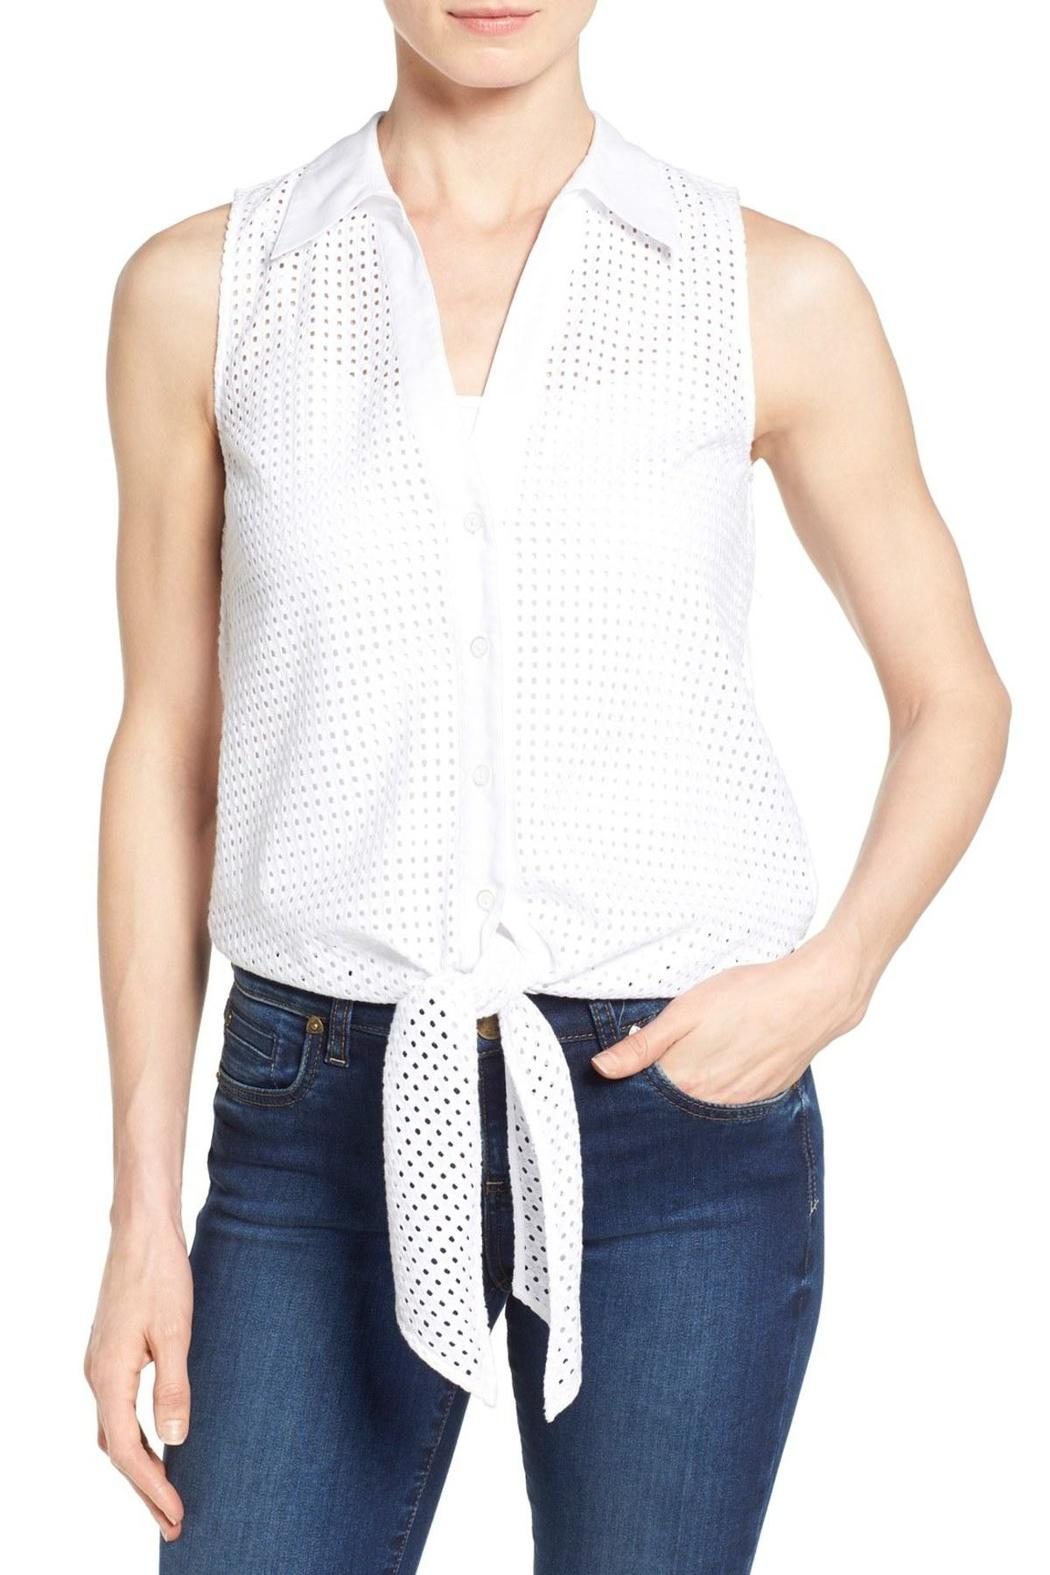 Michael by Michael Kors Tie Front Eyelet Top - Main Image